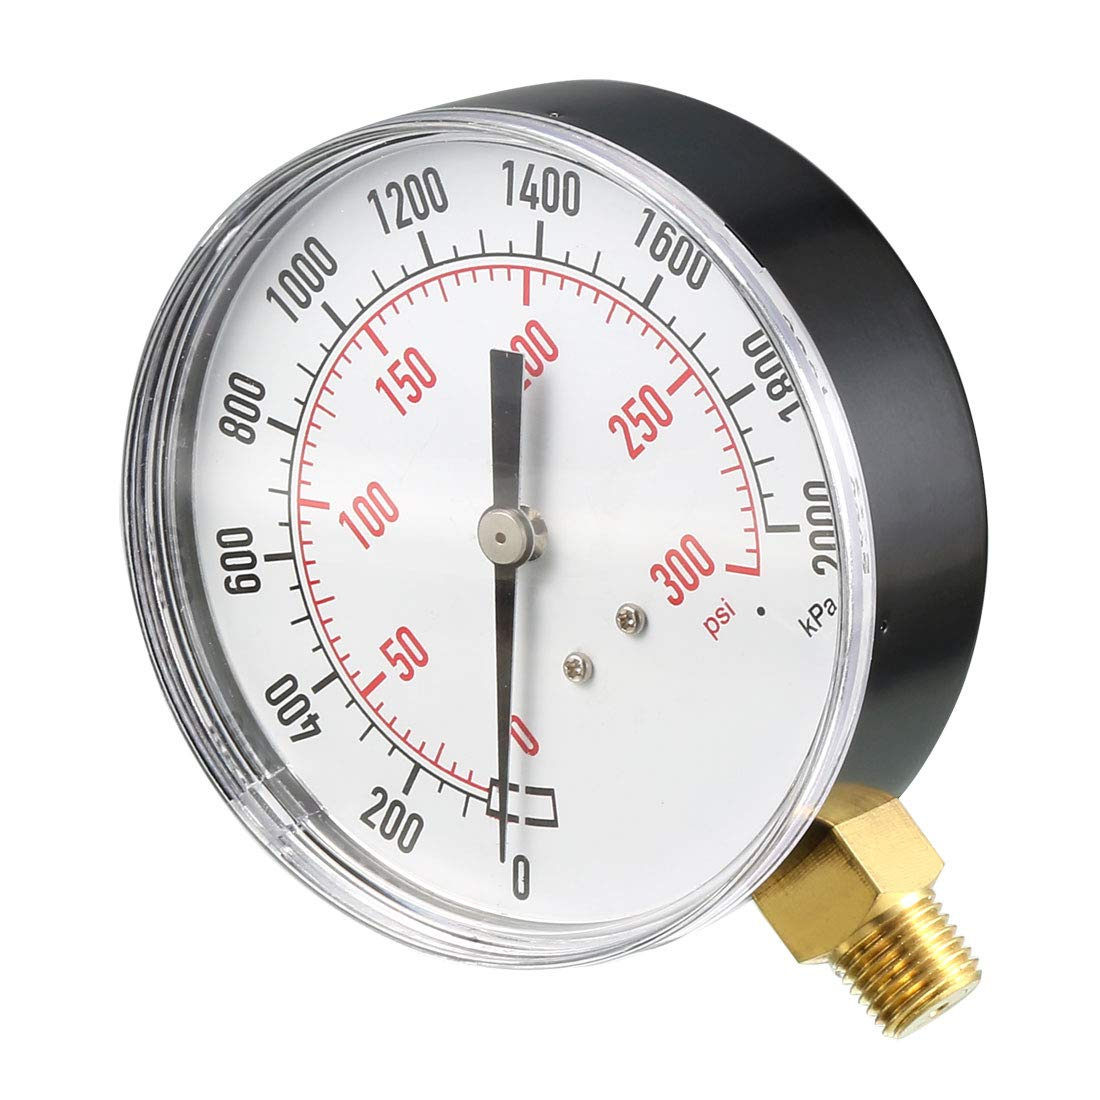 0-300 psi//kPa Dual Scale sourcing map Lower Mount Pressure Gauge with Brass Internals for Air Compressor Water Oil Gas 1//4 NPT Male 3-1//2 Dial Display